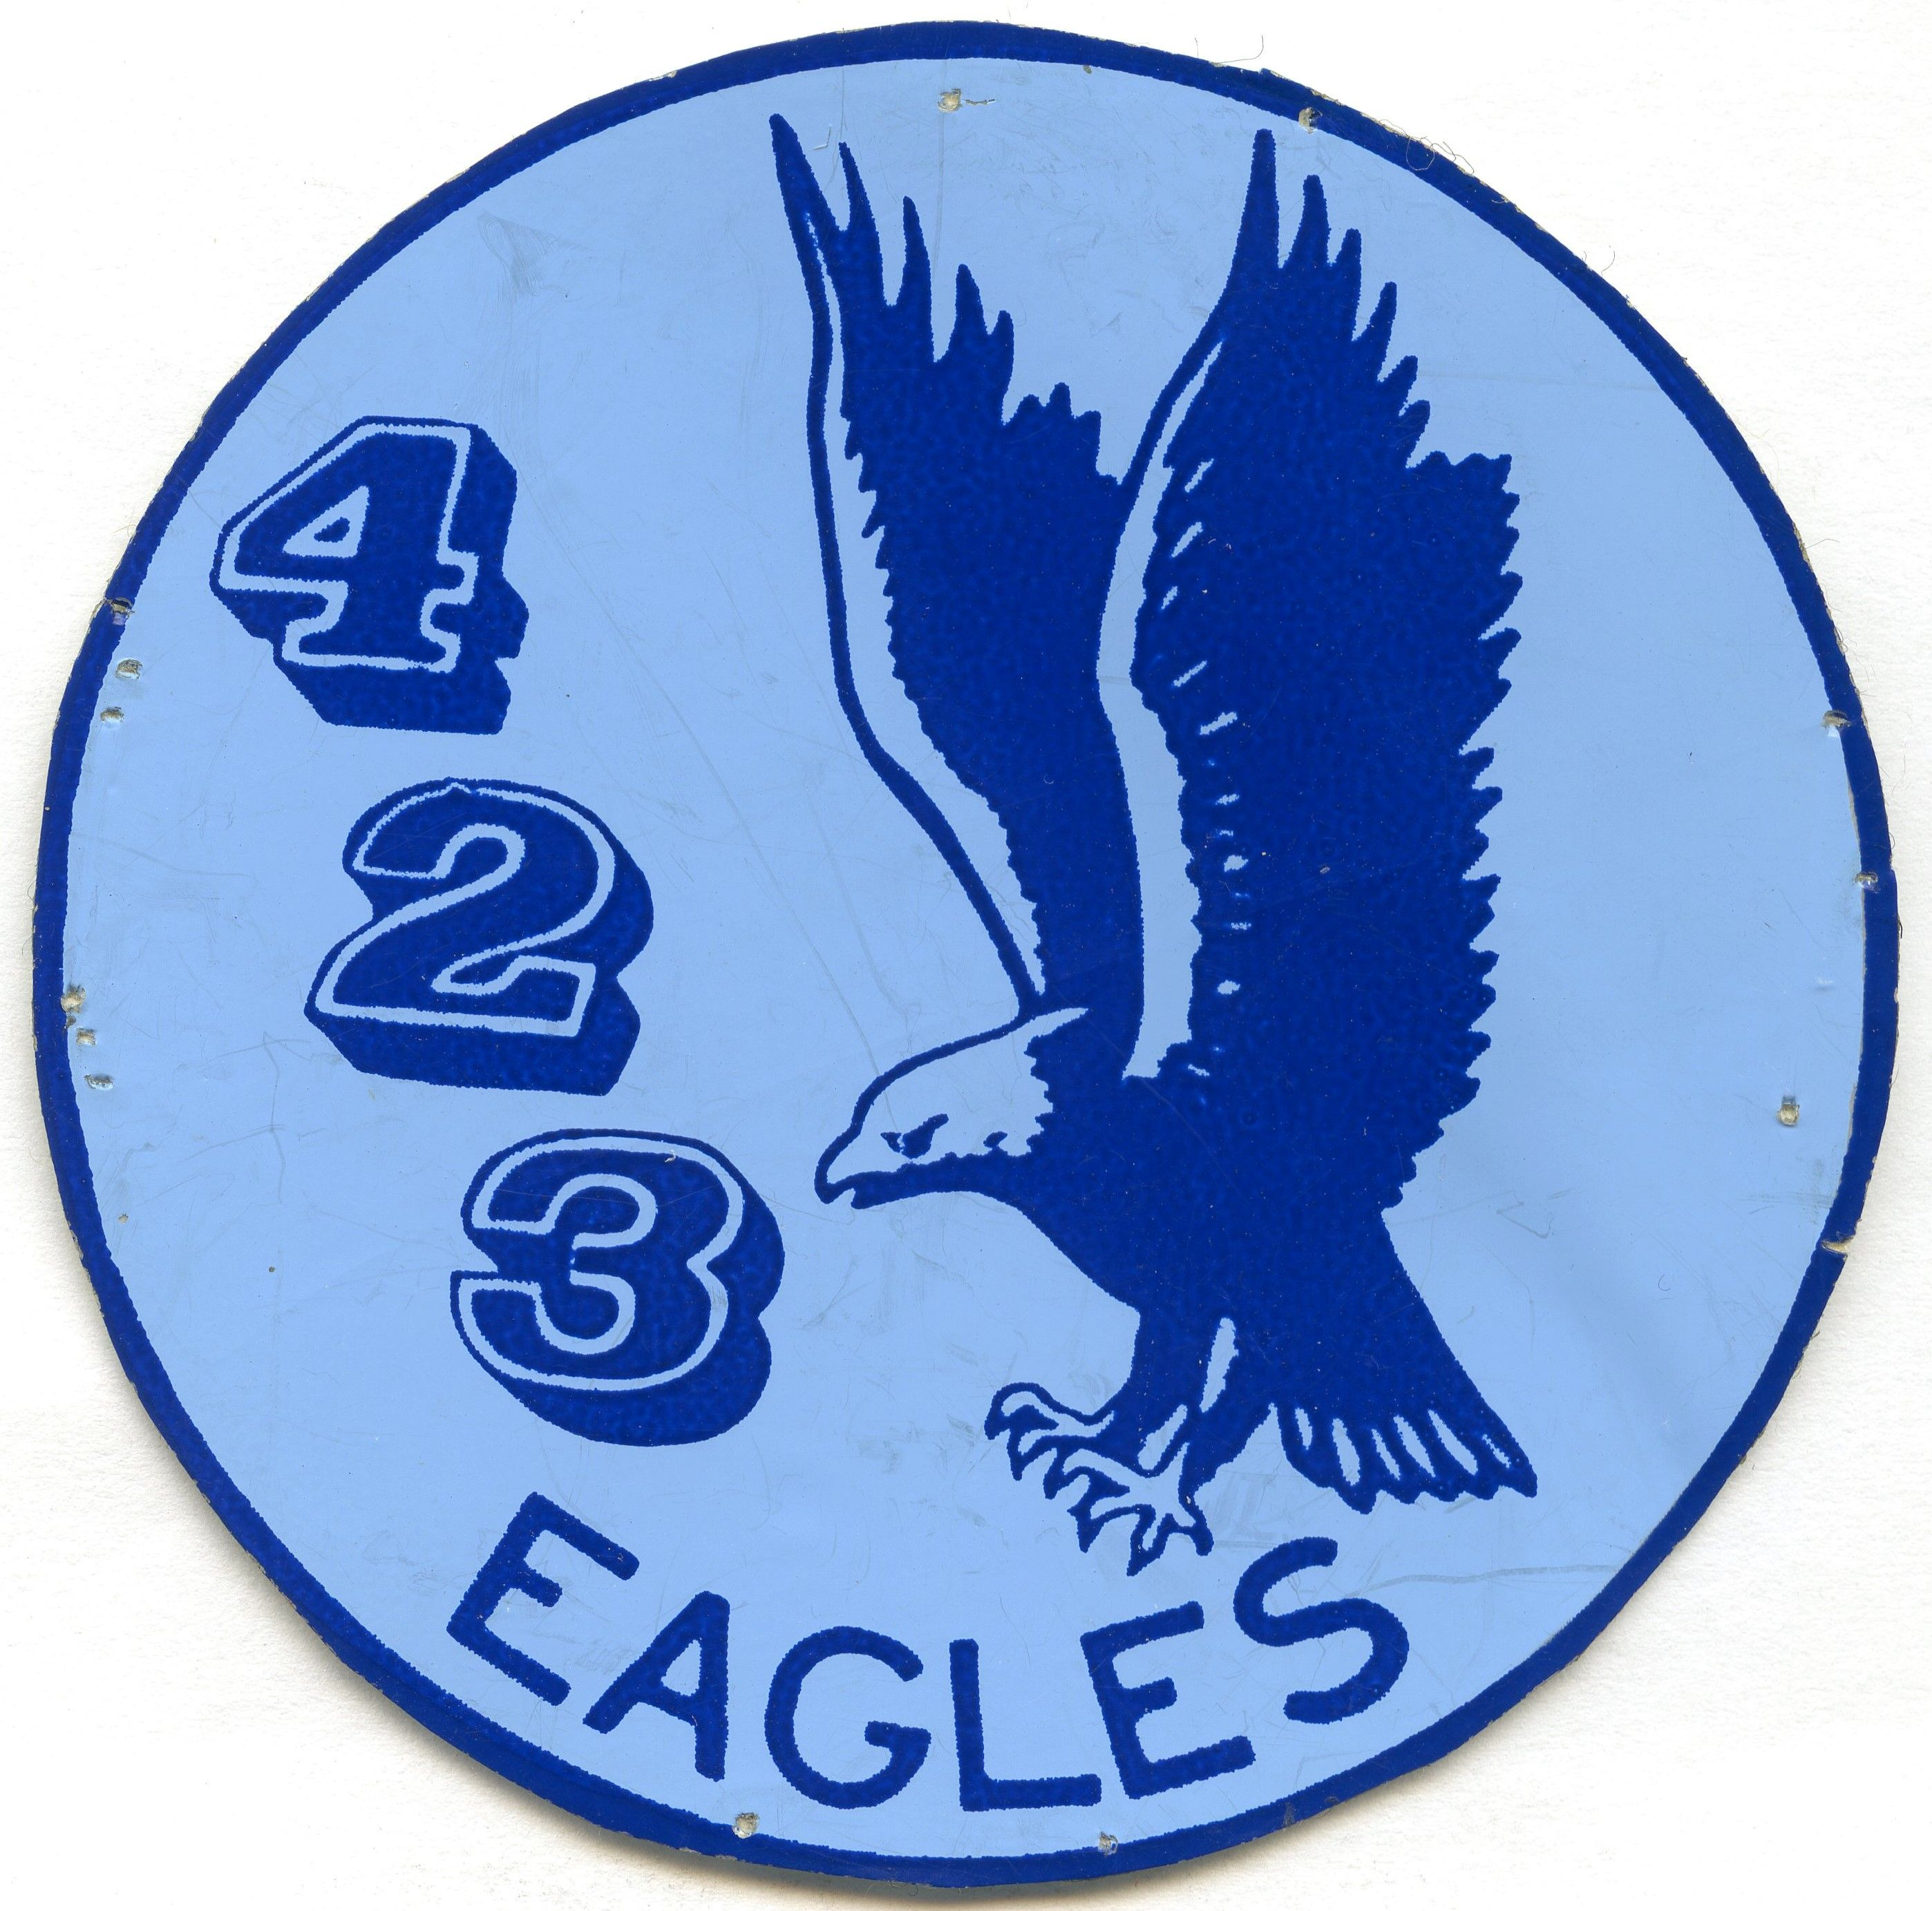 RCAF 423 Squadron Sticker Stickers, Patches, Military